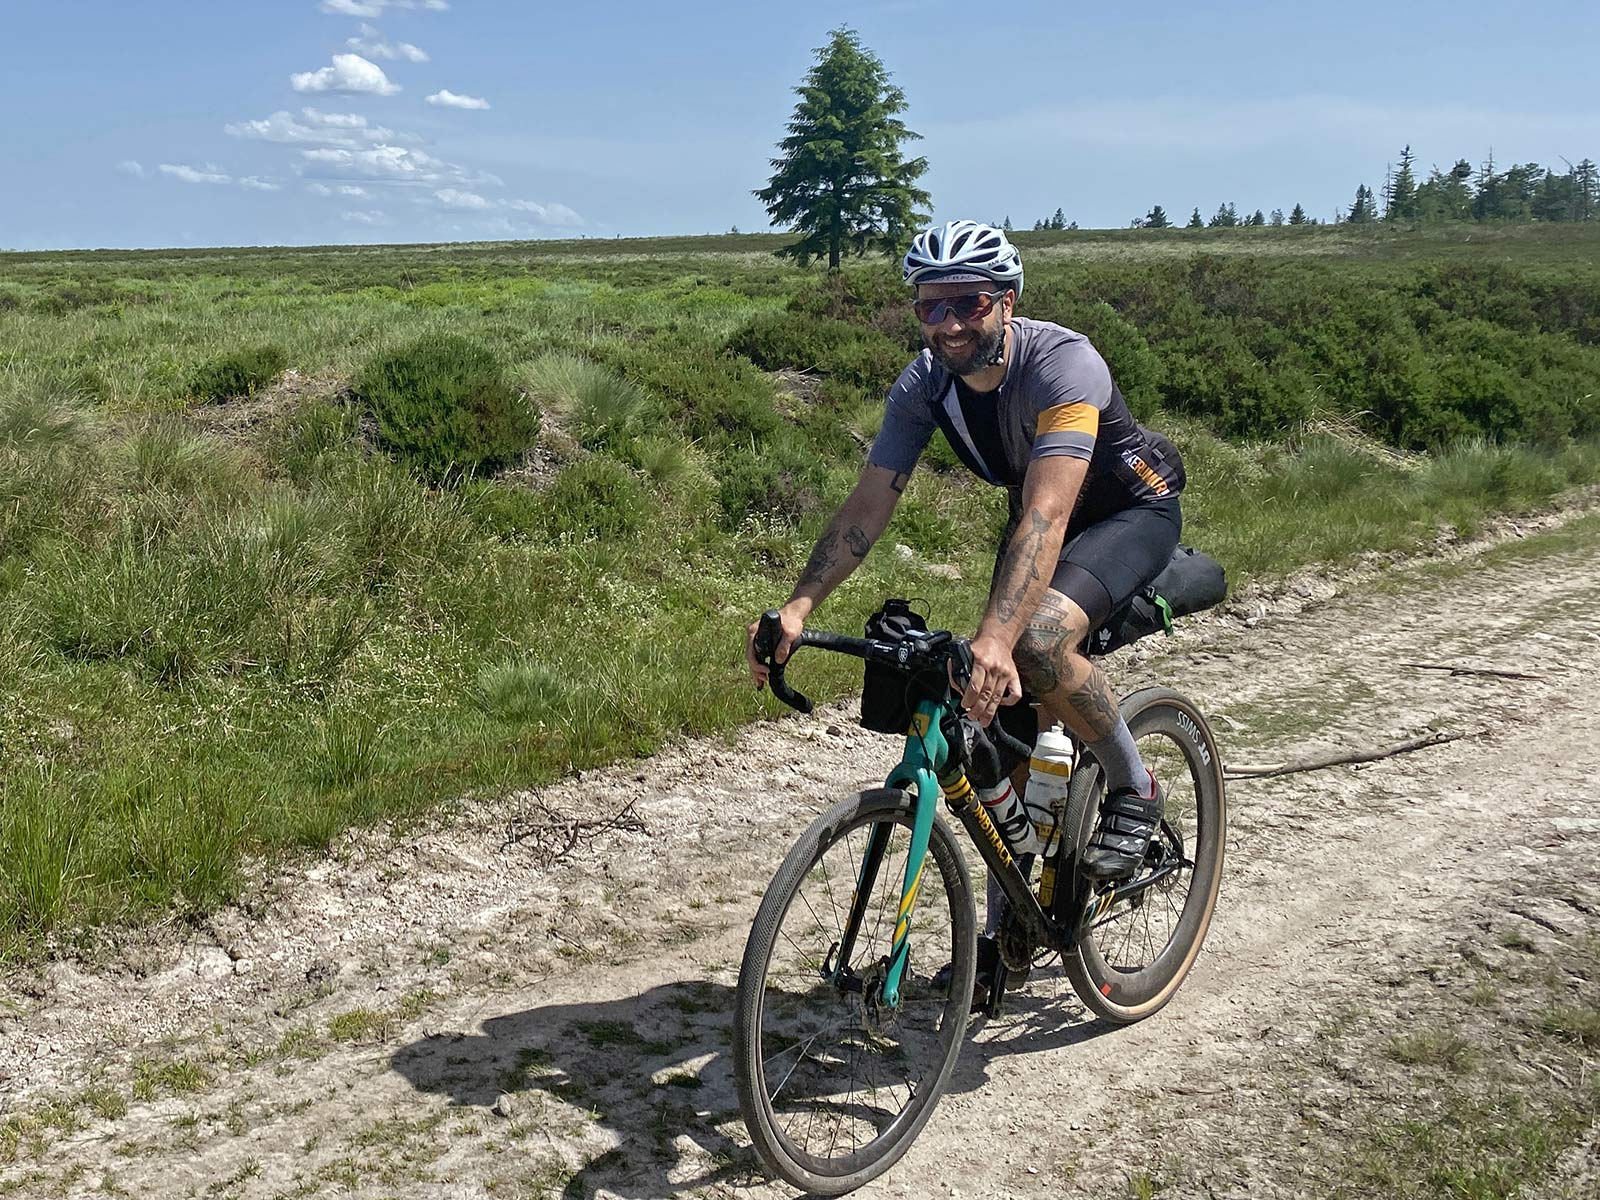 Miss Grape Road packs Review: lightweight Italian bikepacking bags for faster adventure rides